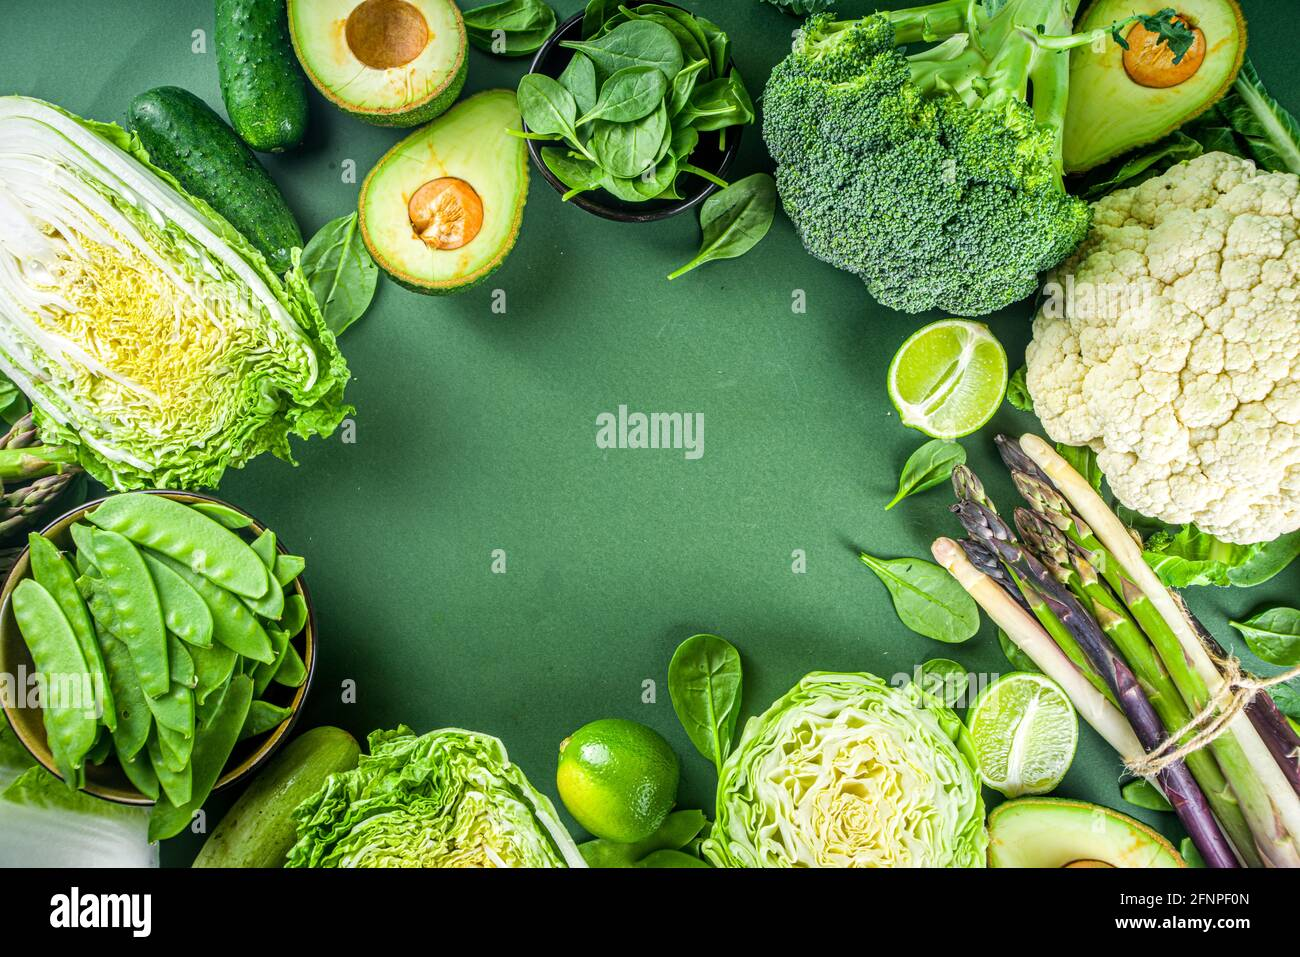 Healthy Diet Spring food background. Assortment of fresh raw organic green vegetables - broccoli, cauliflower, zucchini, cucumbers, asparagus, spinach Stock Photo